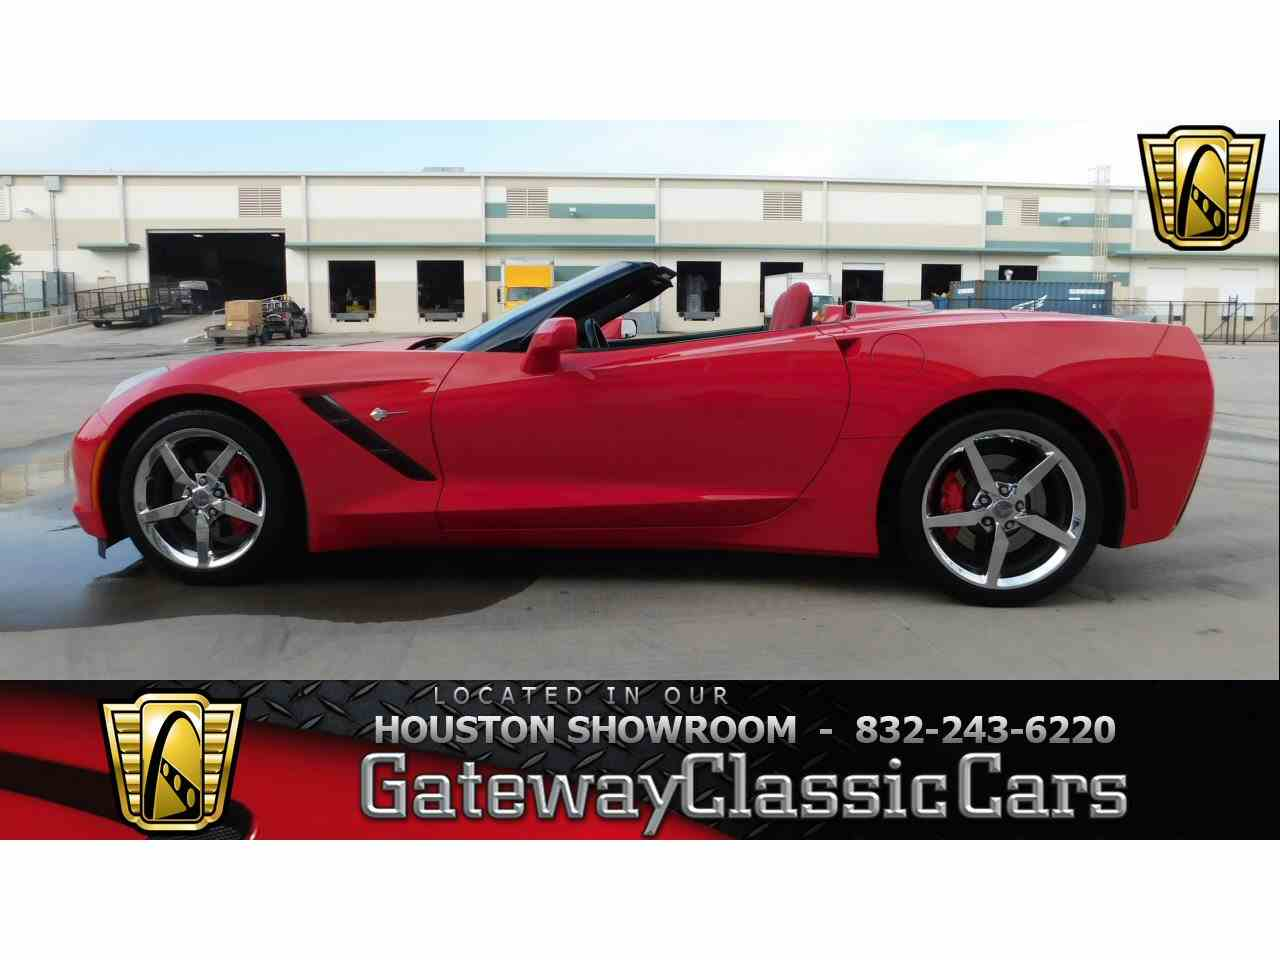 Large Picture of 2014 Chevrolet Corvette located in Houston Texas - $58,000.00 - KEMR